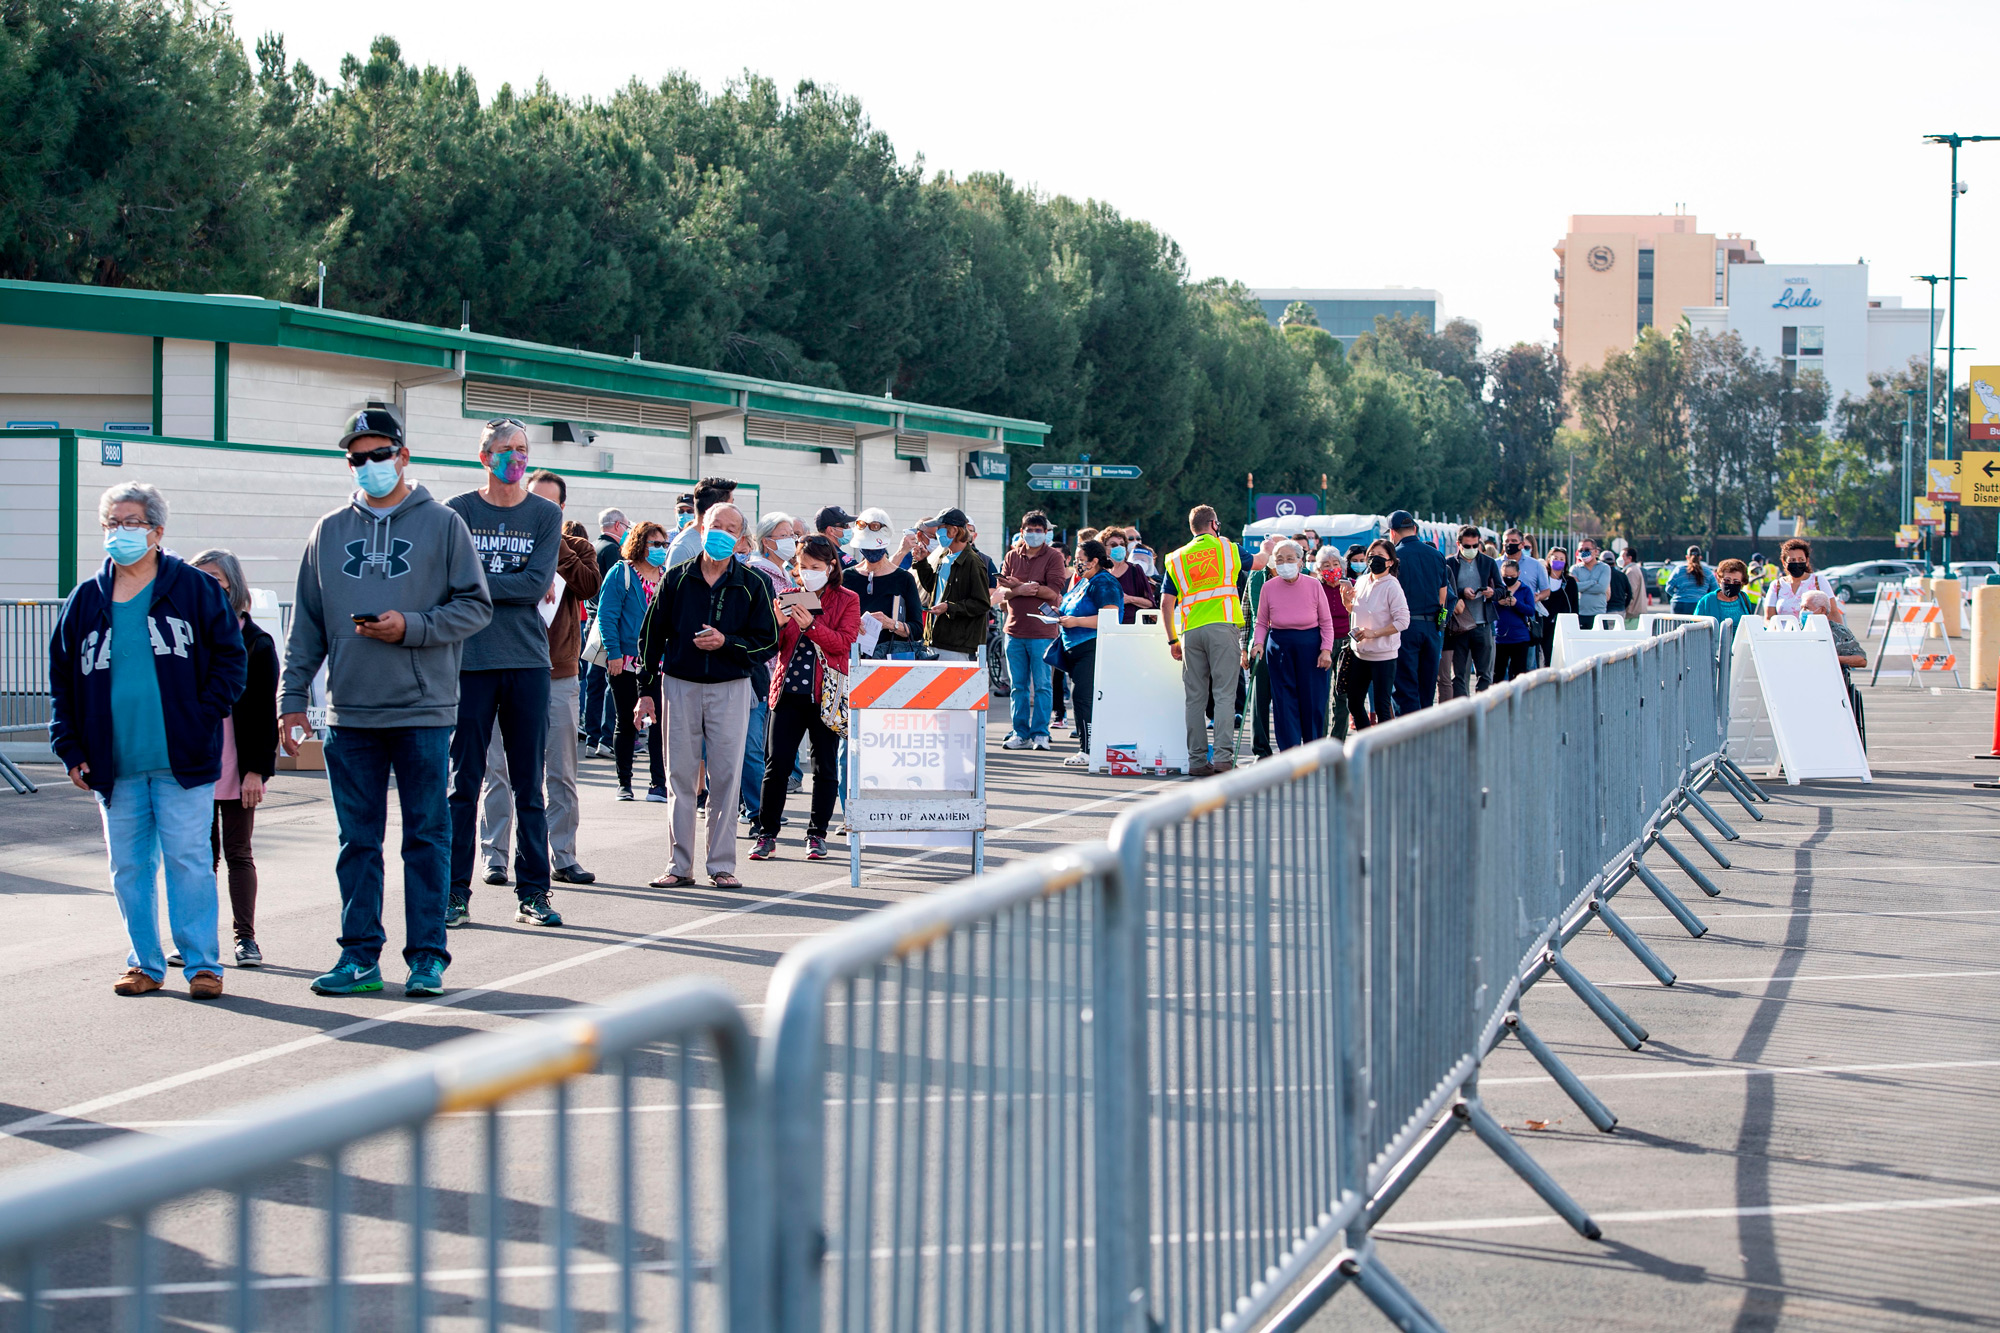 People wait in line in a Disneyland parking lot to receive Covid-19 vaccines on January 13 in Anaheim, California.